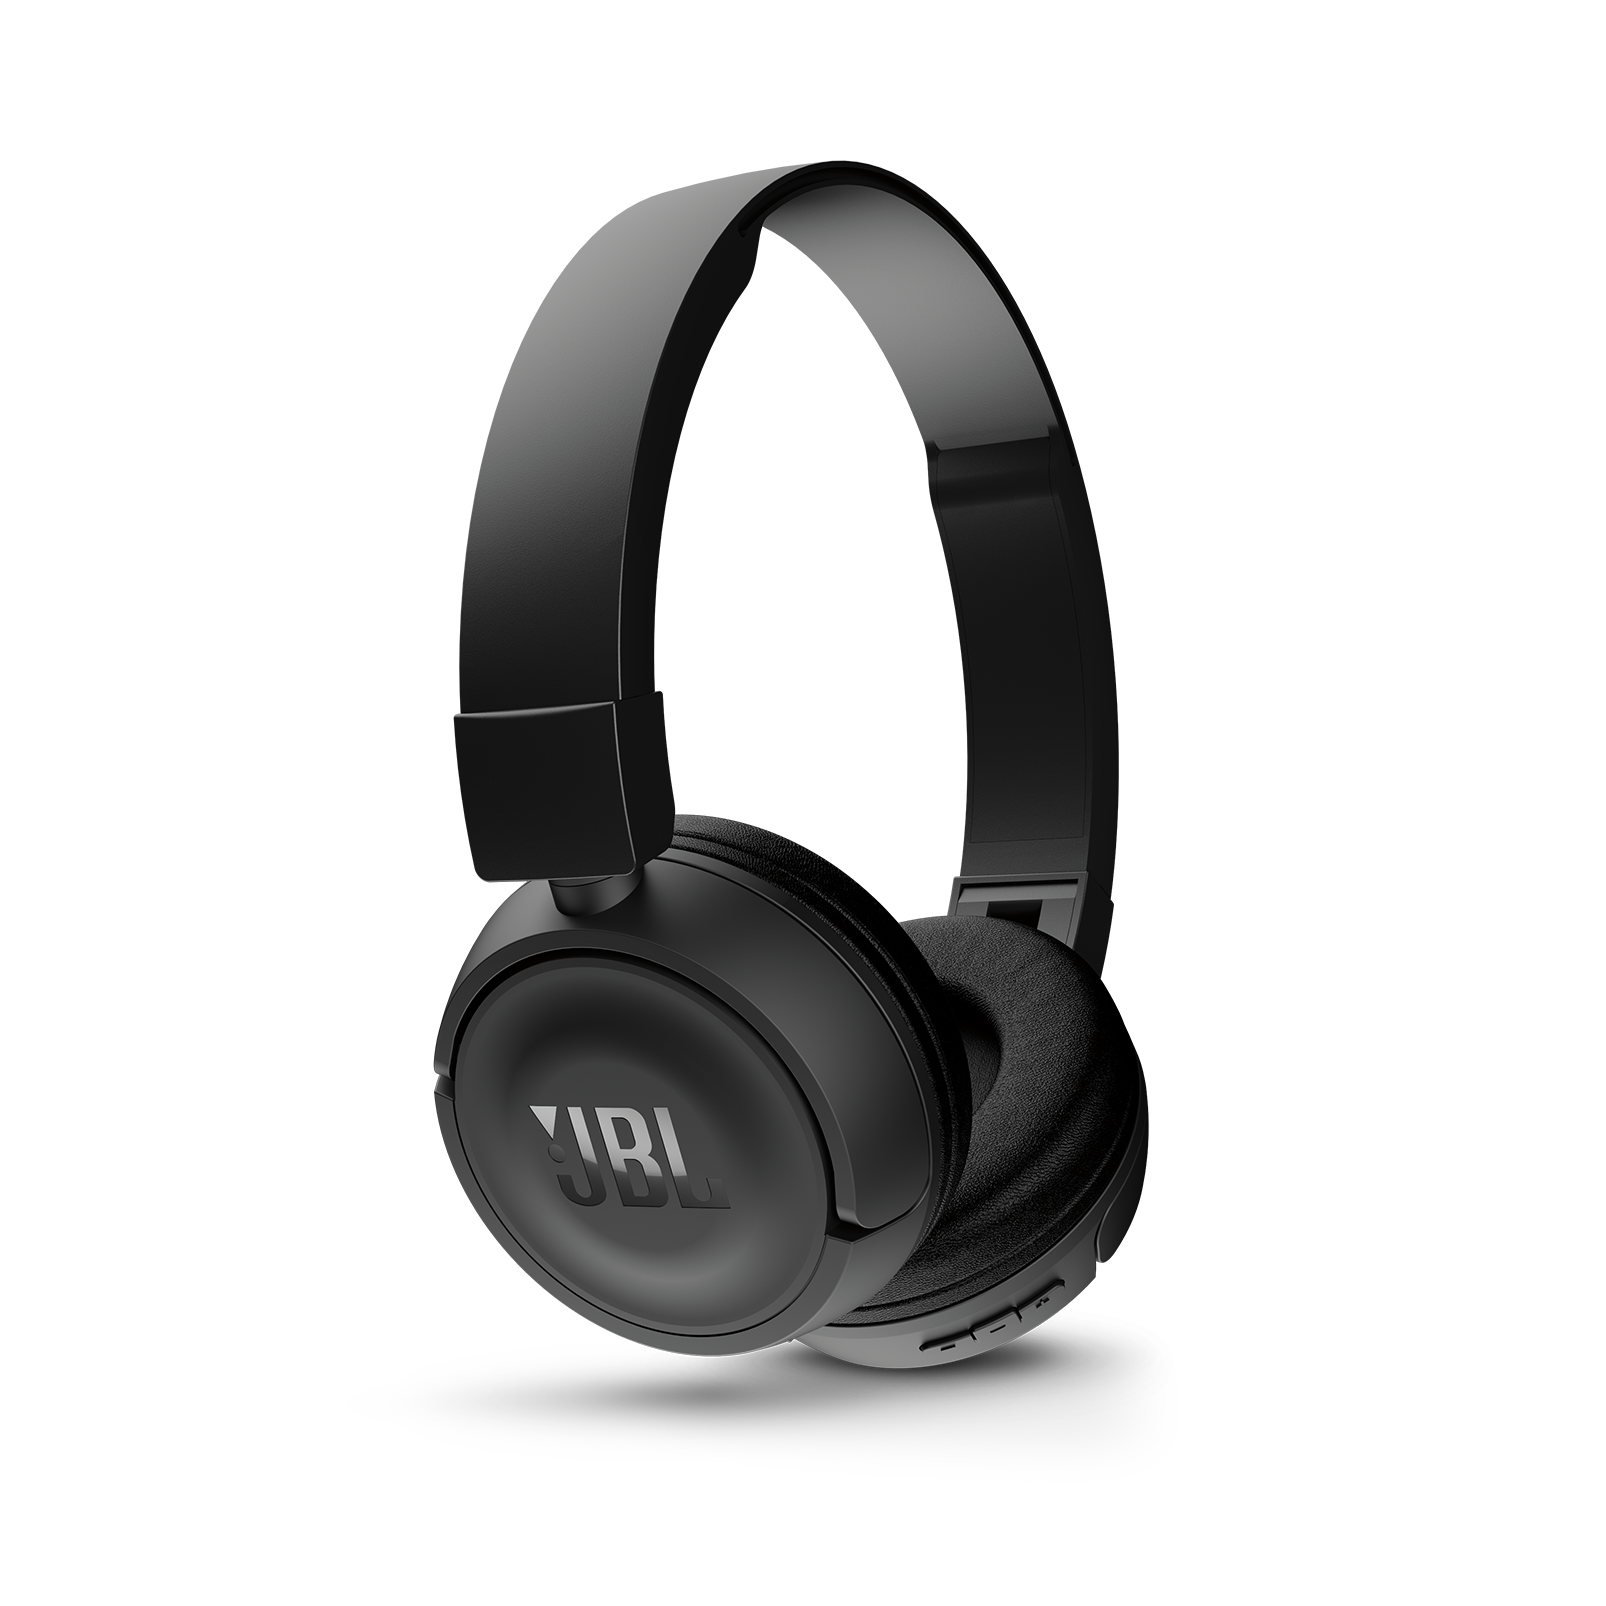 JBL T450BT - Black - Wireless on-ear headphones - Detailshot 2